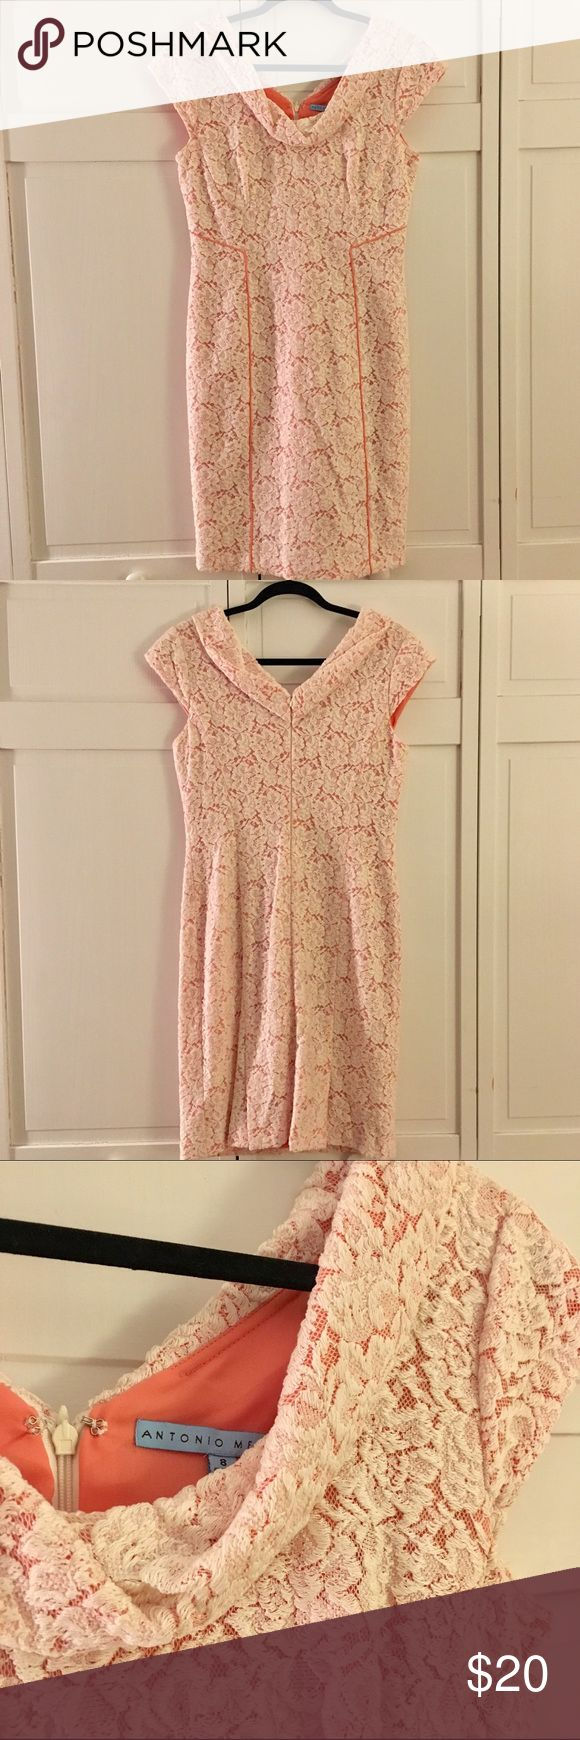 NWOT Antonio Melani Coral Lace Dress This is is a beauty Coral and crochet Lace Dress by Antonio Melani. It's perfect for a more formal work function or fancy date night. Never Worn. NO Trades. NO Pal. Price is Firm. ANTONIO MELANI Dresses